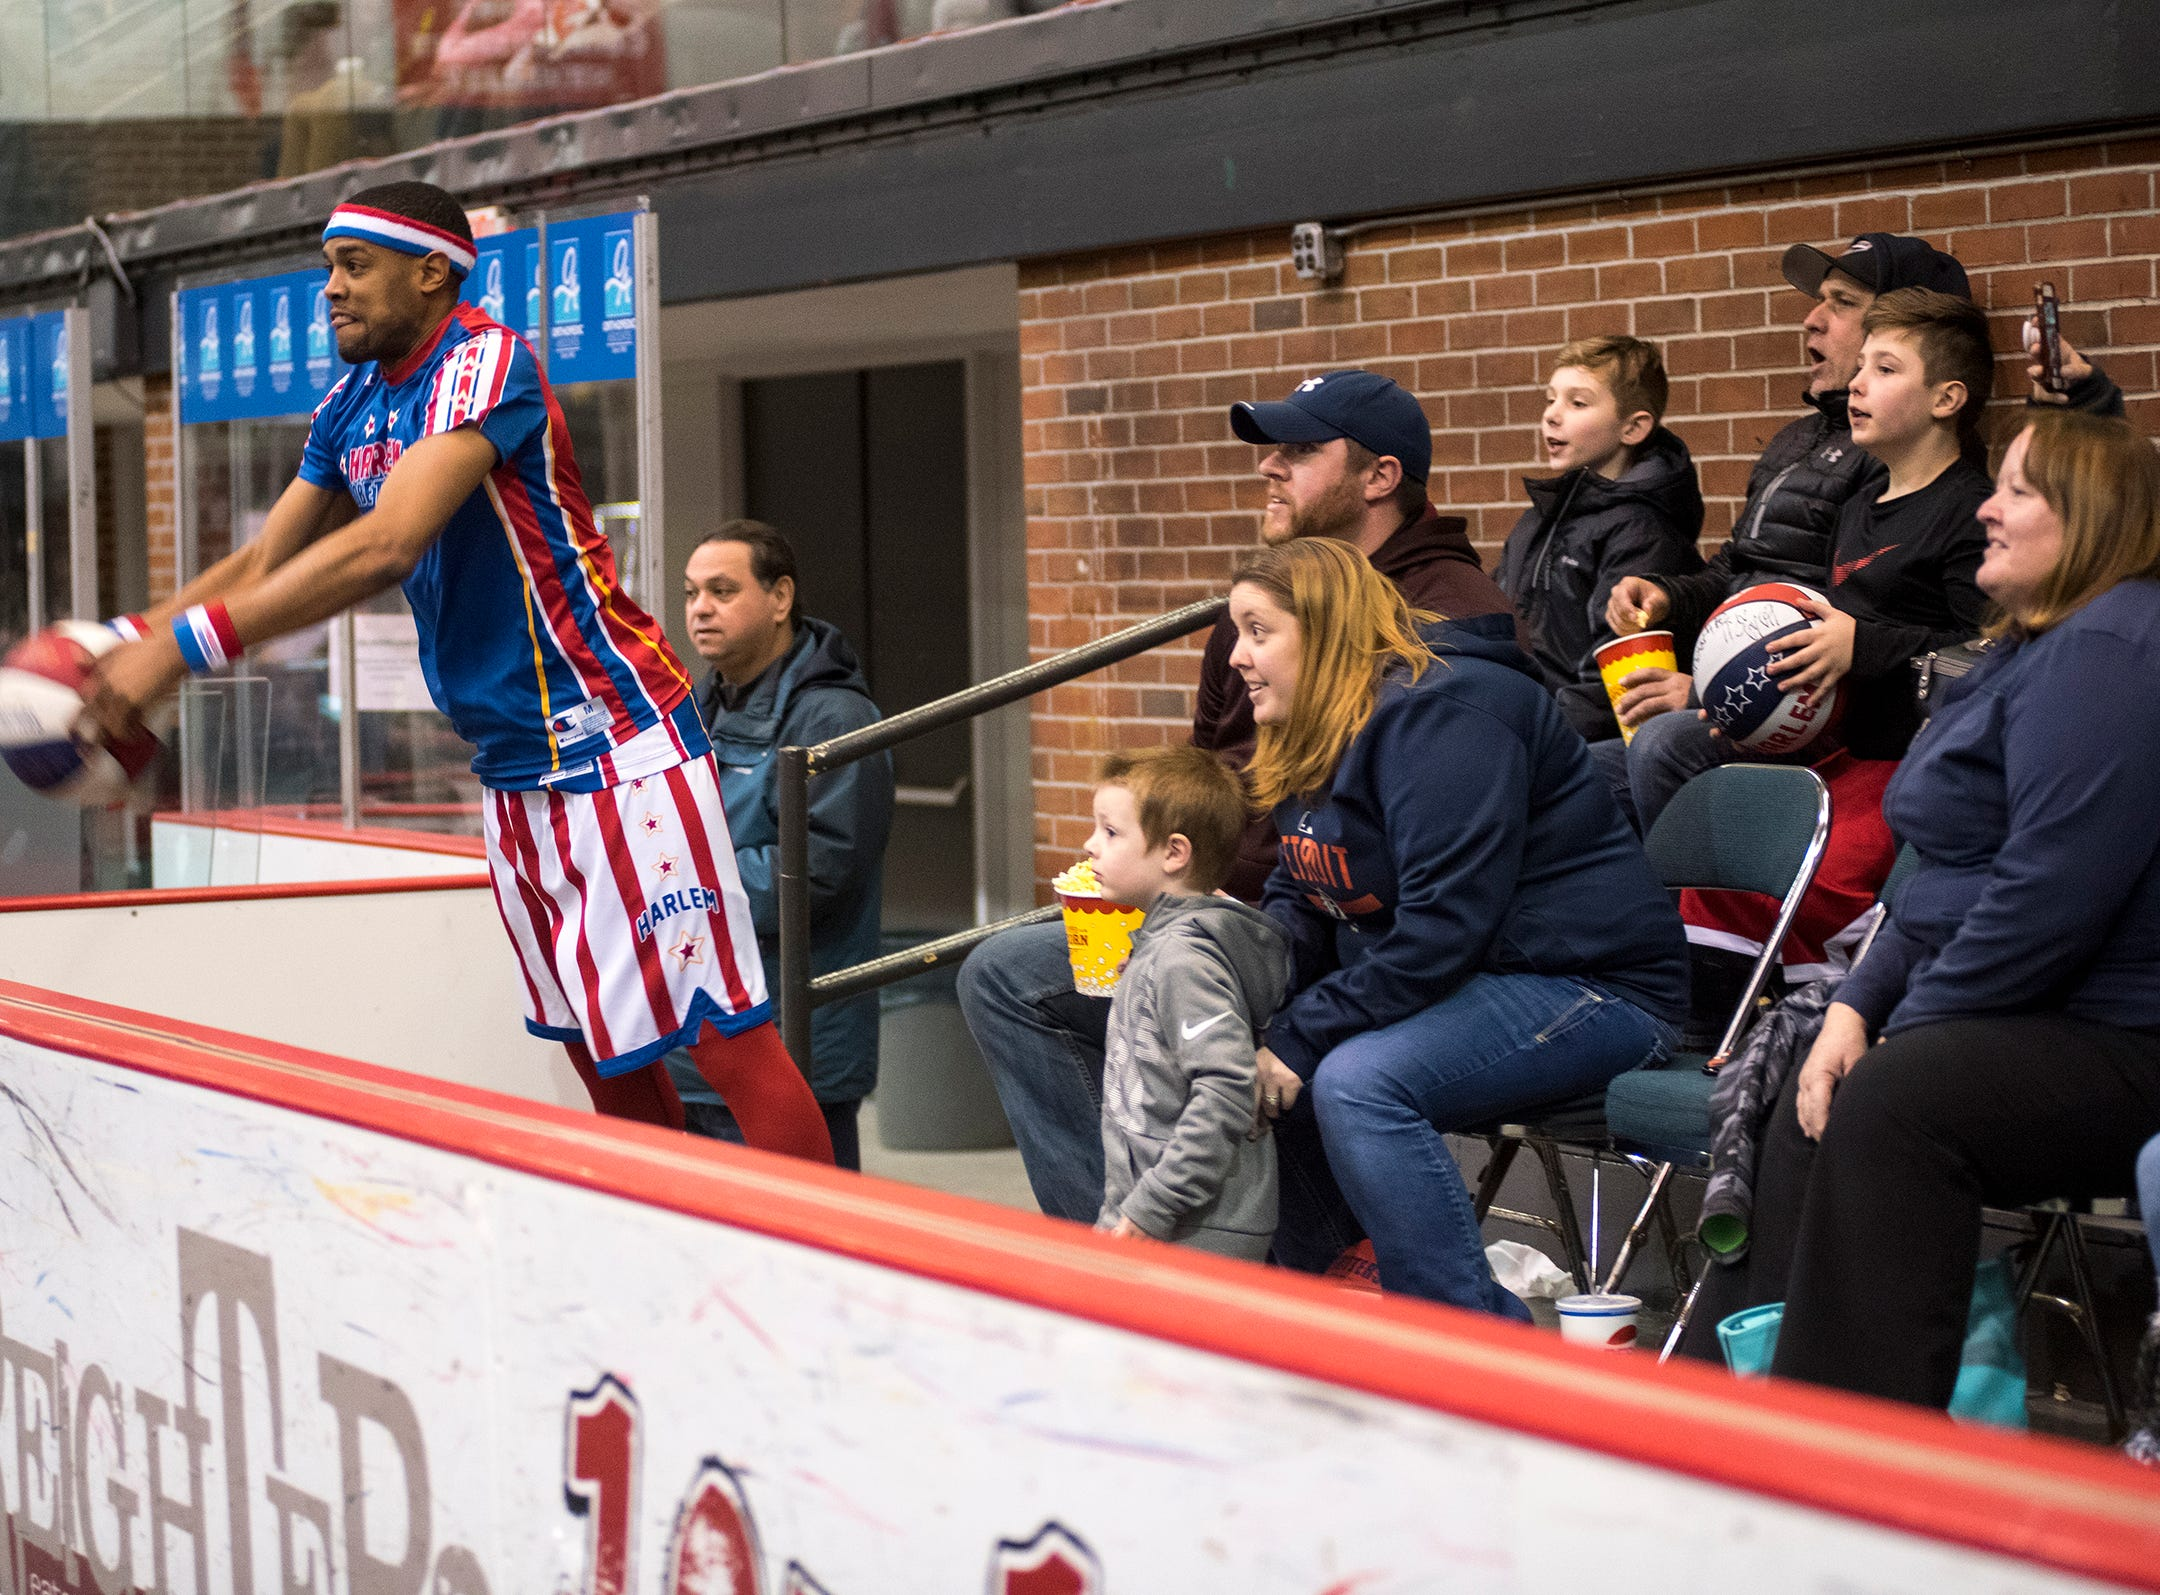 Harlem Globetrotters guard Cheese makes a shot from the audience while warming up before their match against the Washington Generals Saturday, Feb. 2, 2019 at McMorran Arena.